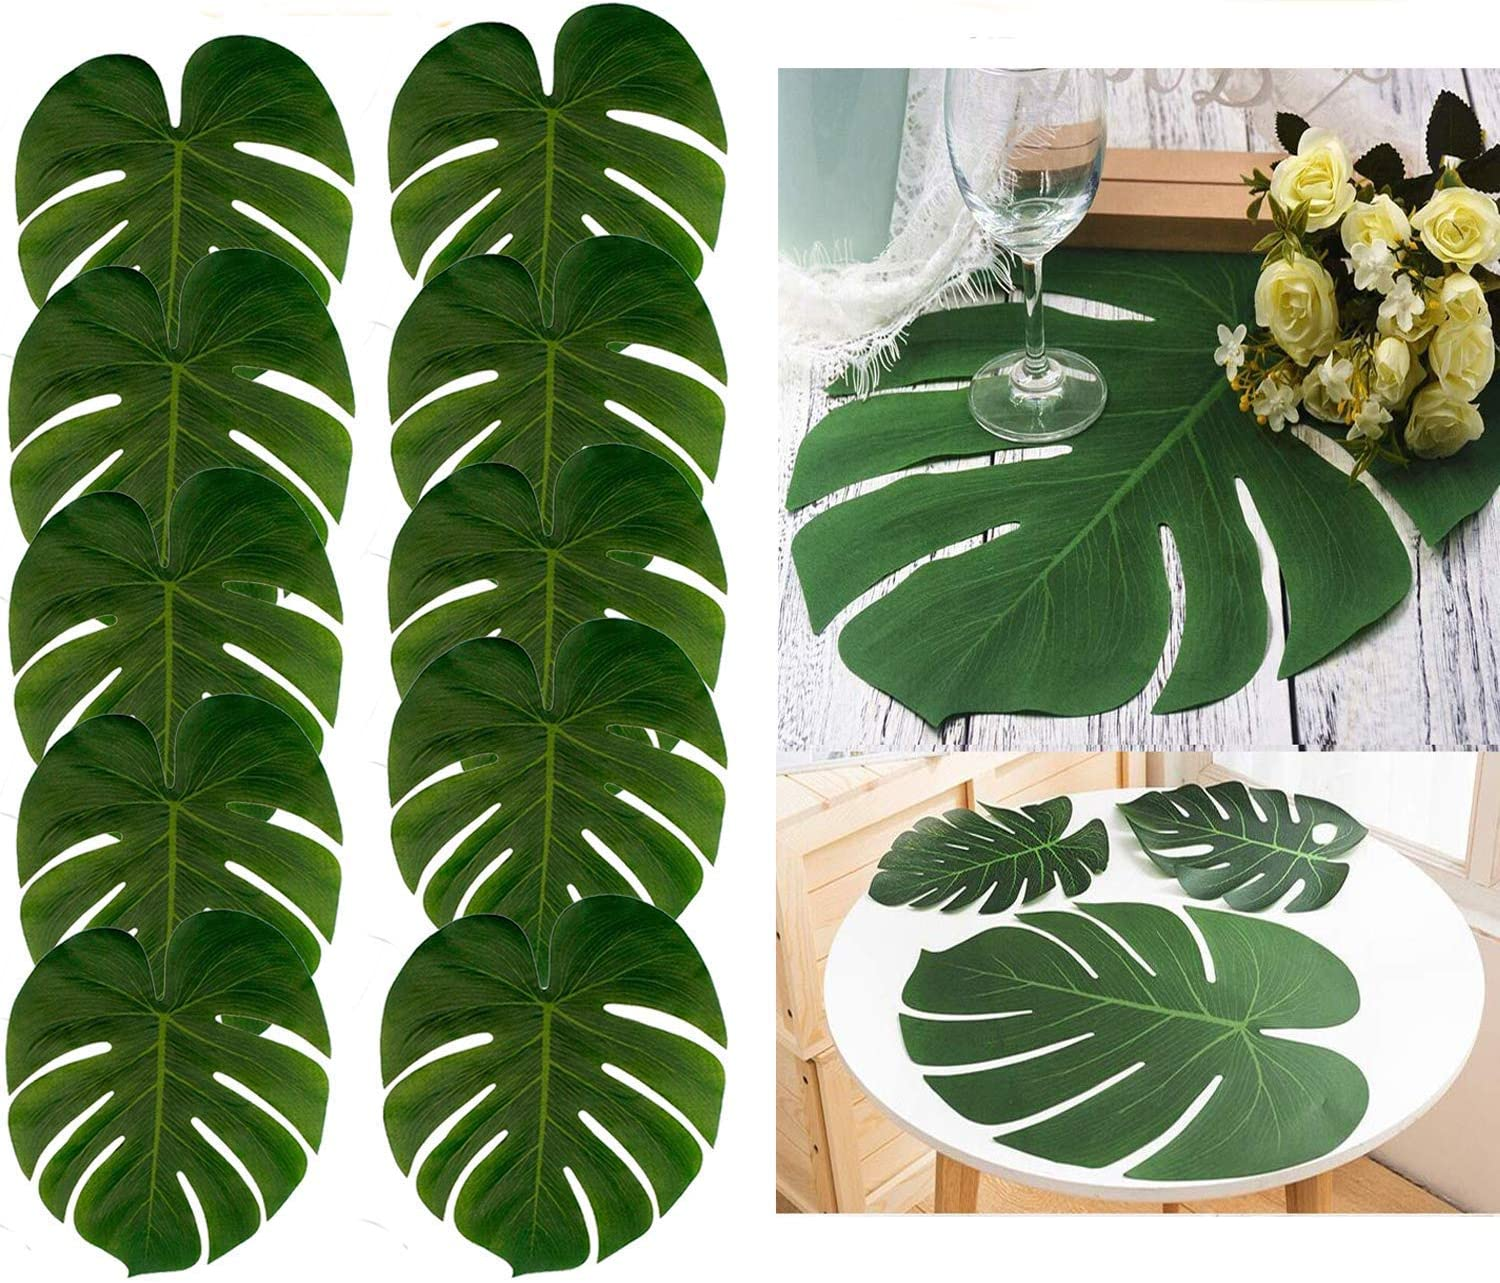 Amazon Com 48pcs Large Artificial Tropical Palm Leaves 13 8 By 11 4 Inch Hawaiian Luau Party Tiki Aloha Jungle Beach Birthday Decorations Kitchen Dining Professionally lit and photographed, this collection has dozens of different leaves including several tropical and palm varieties. 48pcs large artificial tropical palm leaves 13 8 by 11 4 inch hawaiian luau party tiki aloha jungle beach birthday decorations